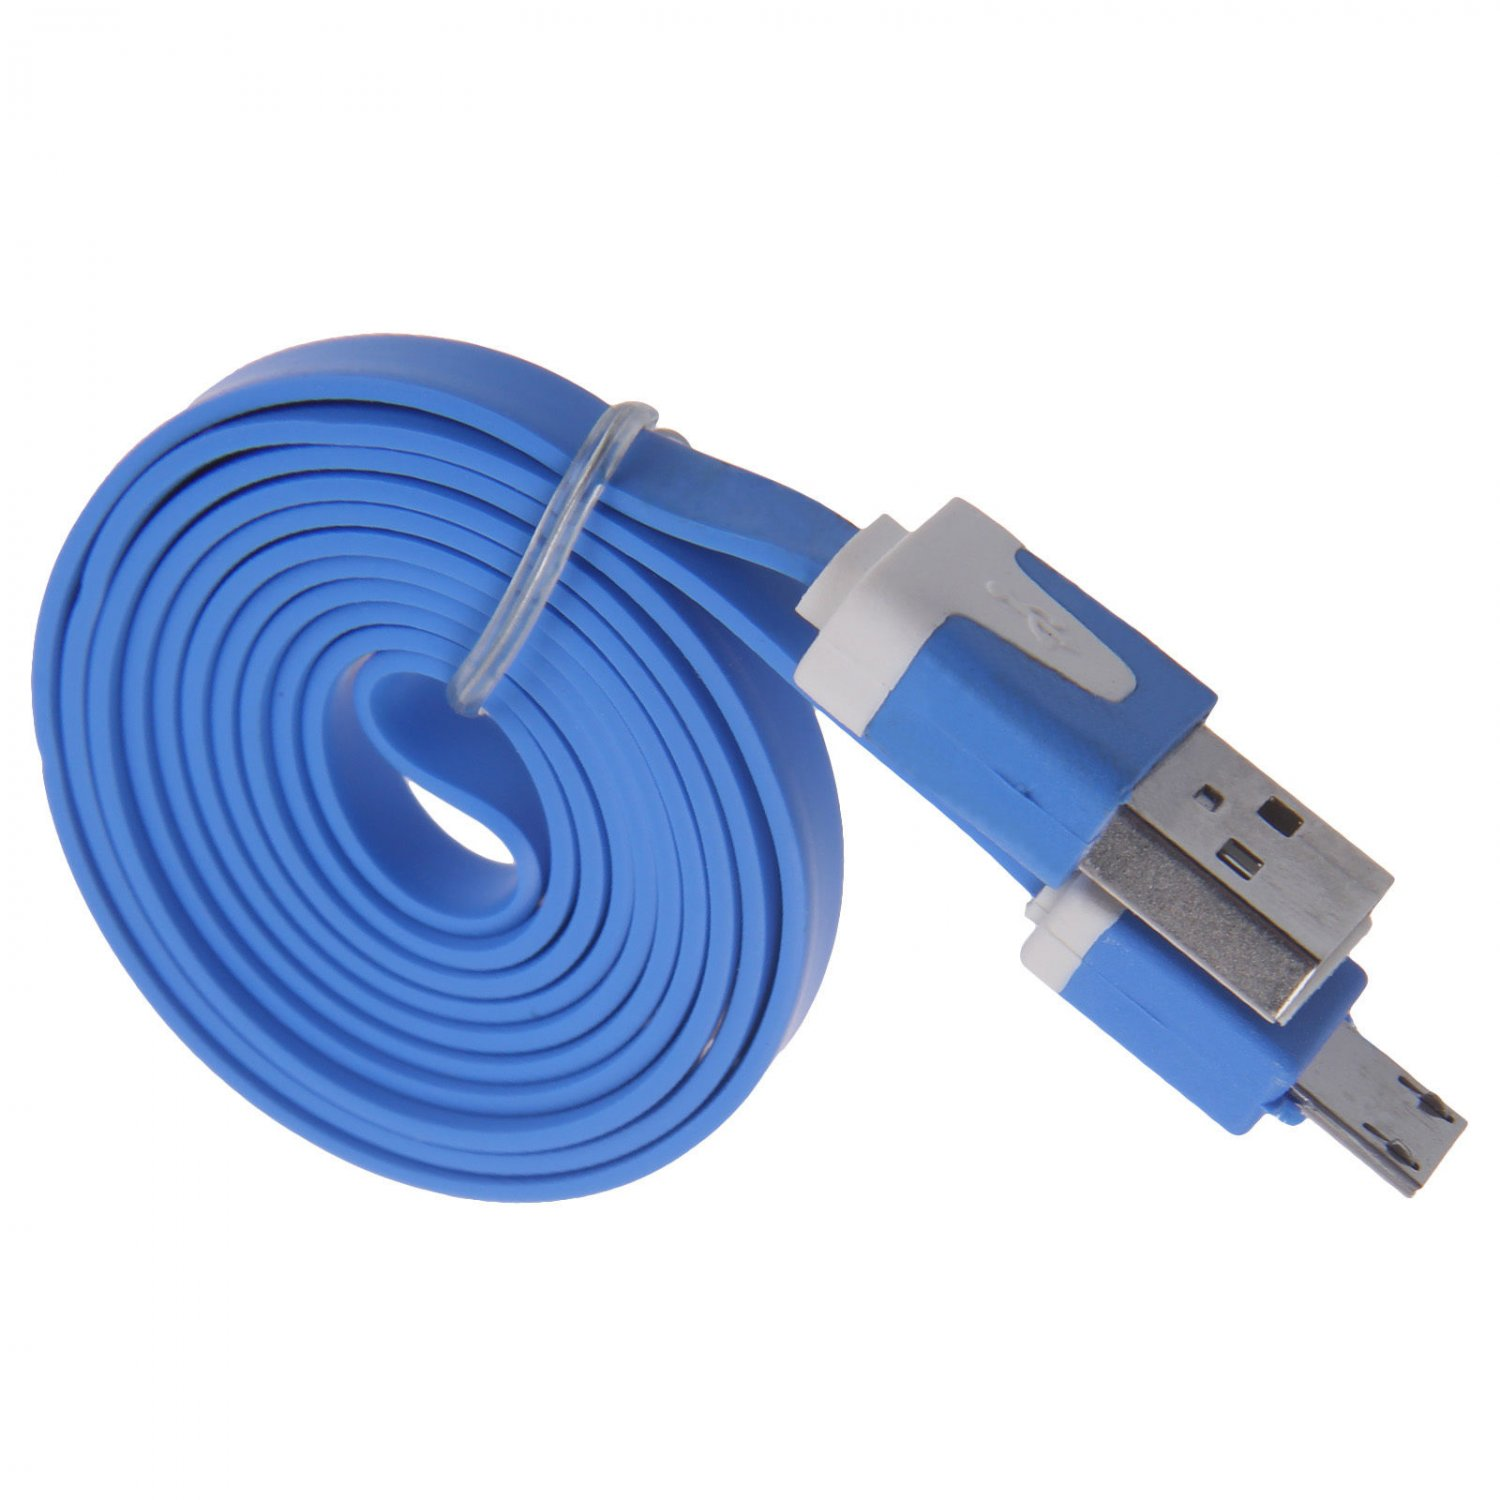 1M Blue Flat Noodle Micro USB Charger Sync Data Cable for Android Phones